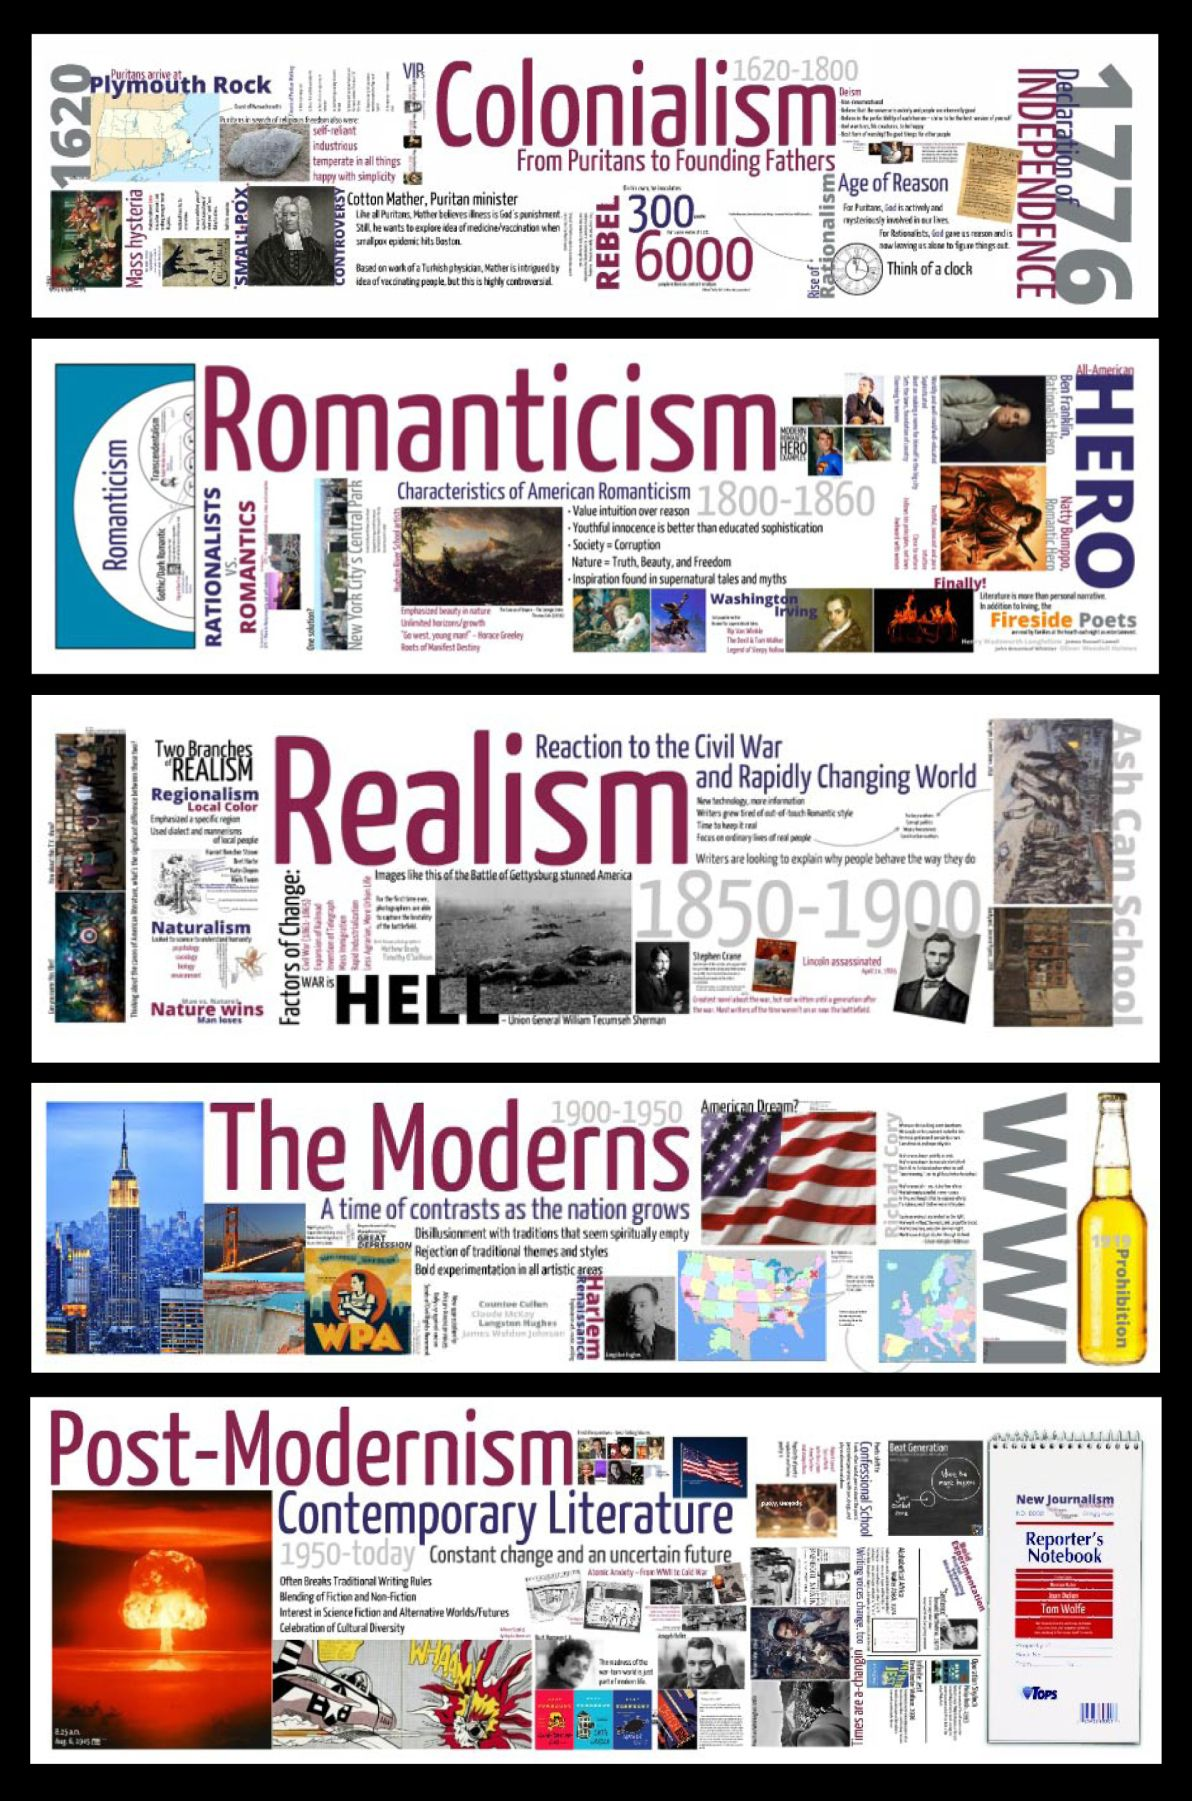 an overview of the transcendentalism as a historical movement My students have found very helpful this introductory overview lecture/handout about the background and major ideas of american romanticism and transcendentalism it.